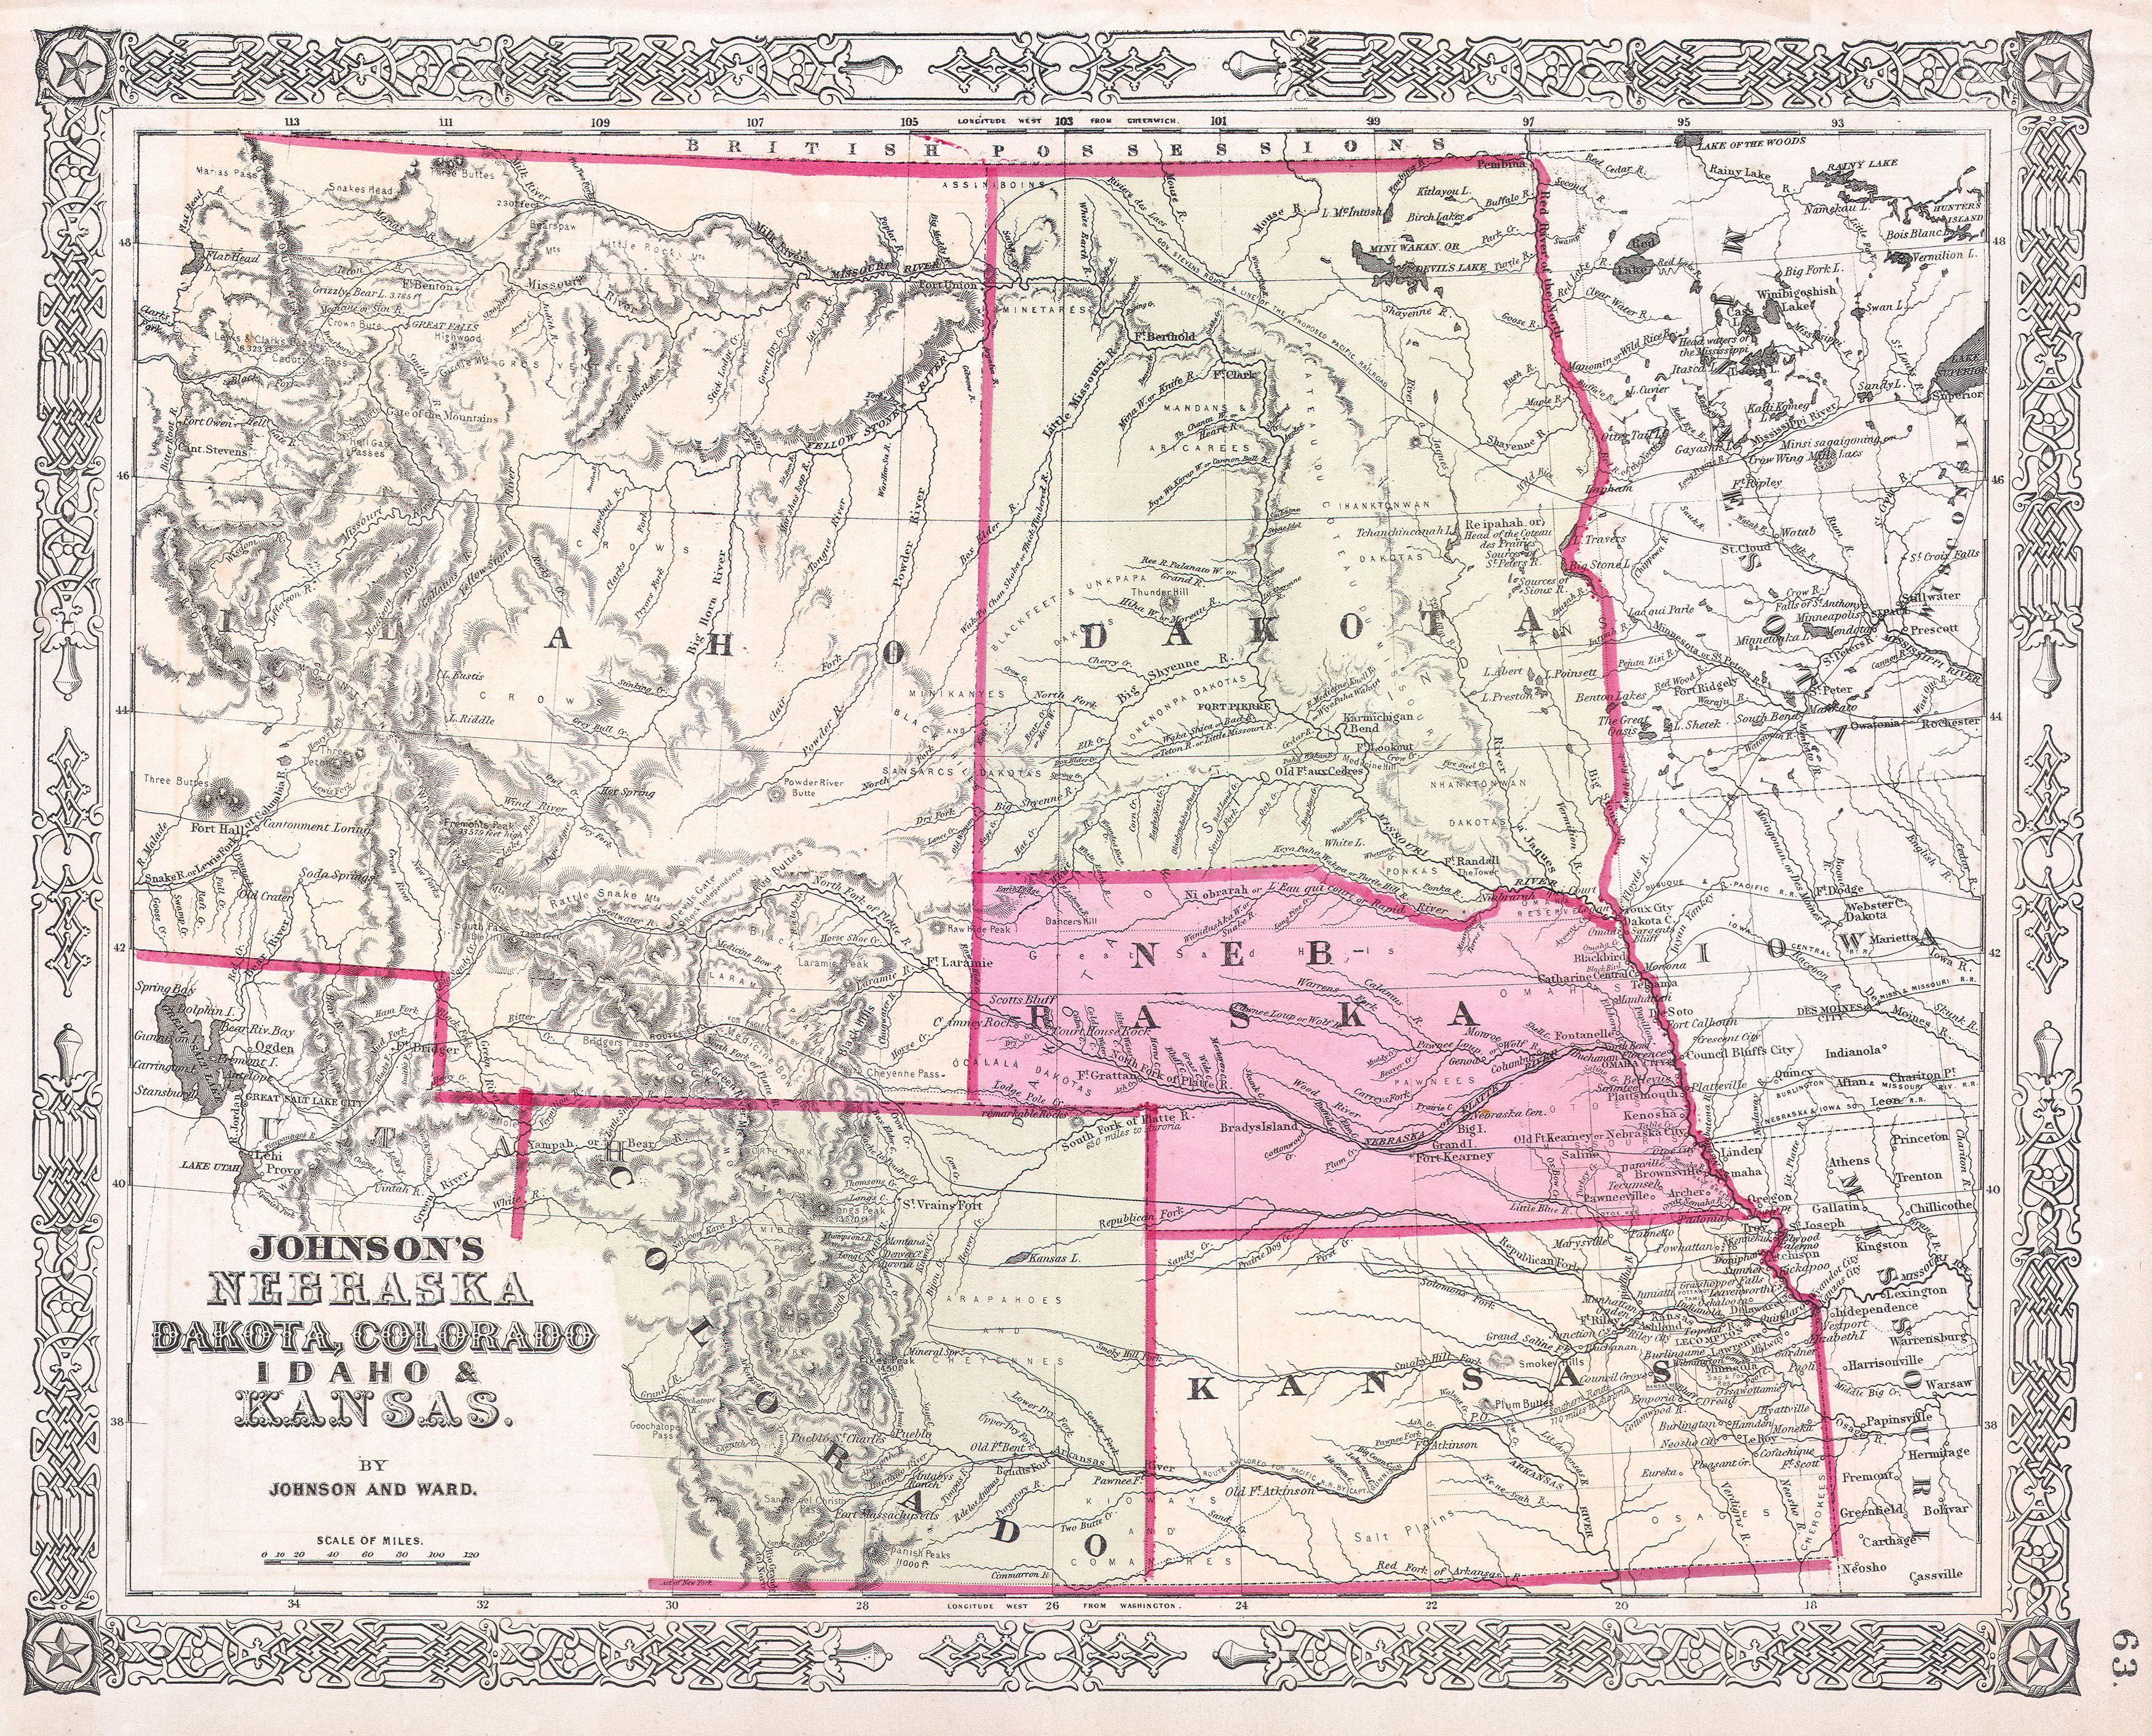 File 1863 Johnson 39 s Map of Colorado Dakota Idaho Nebraska Kansas G